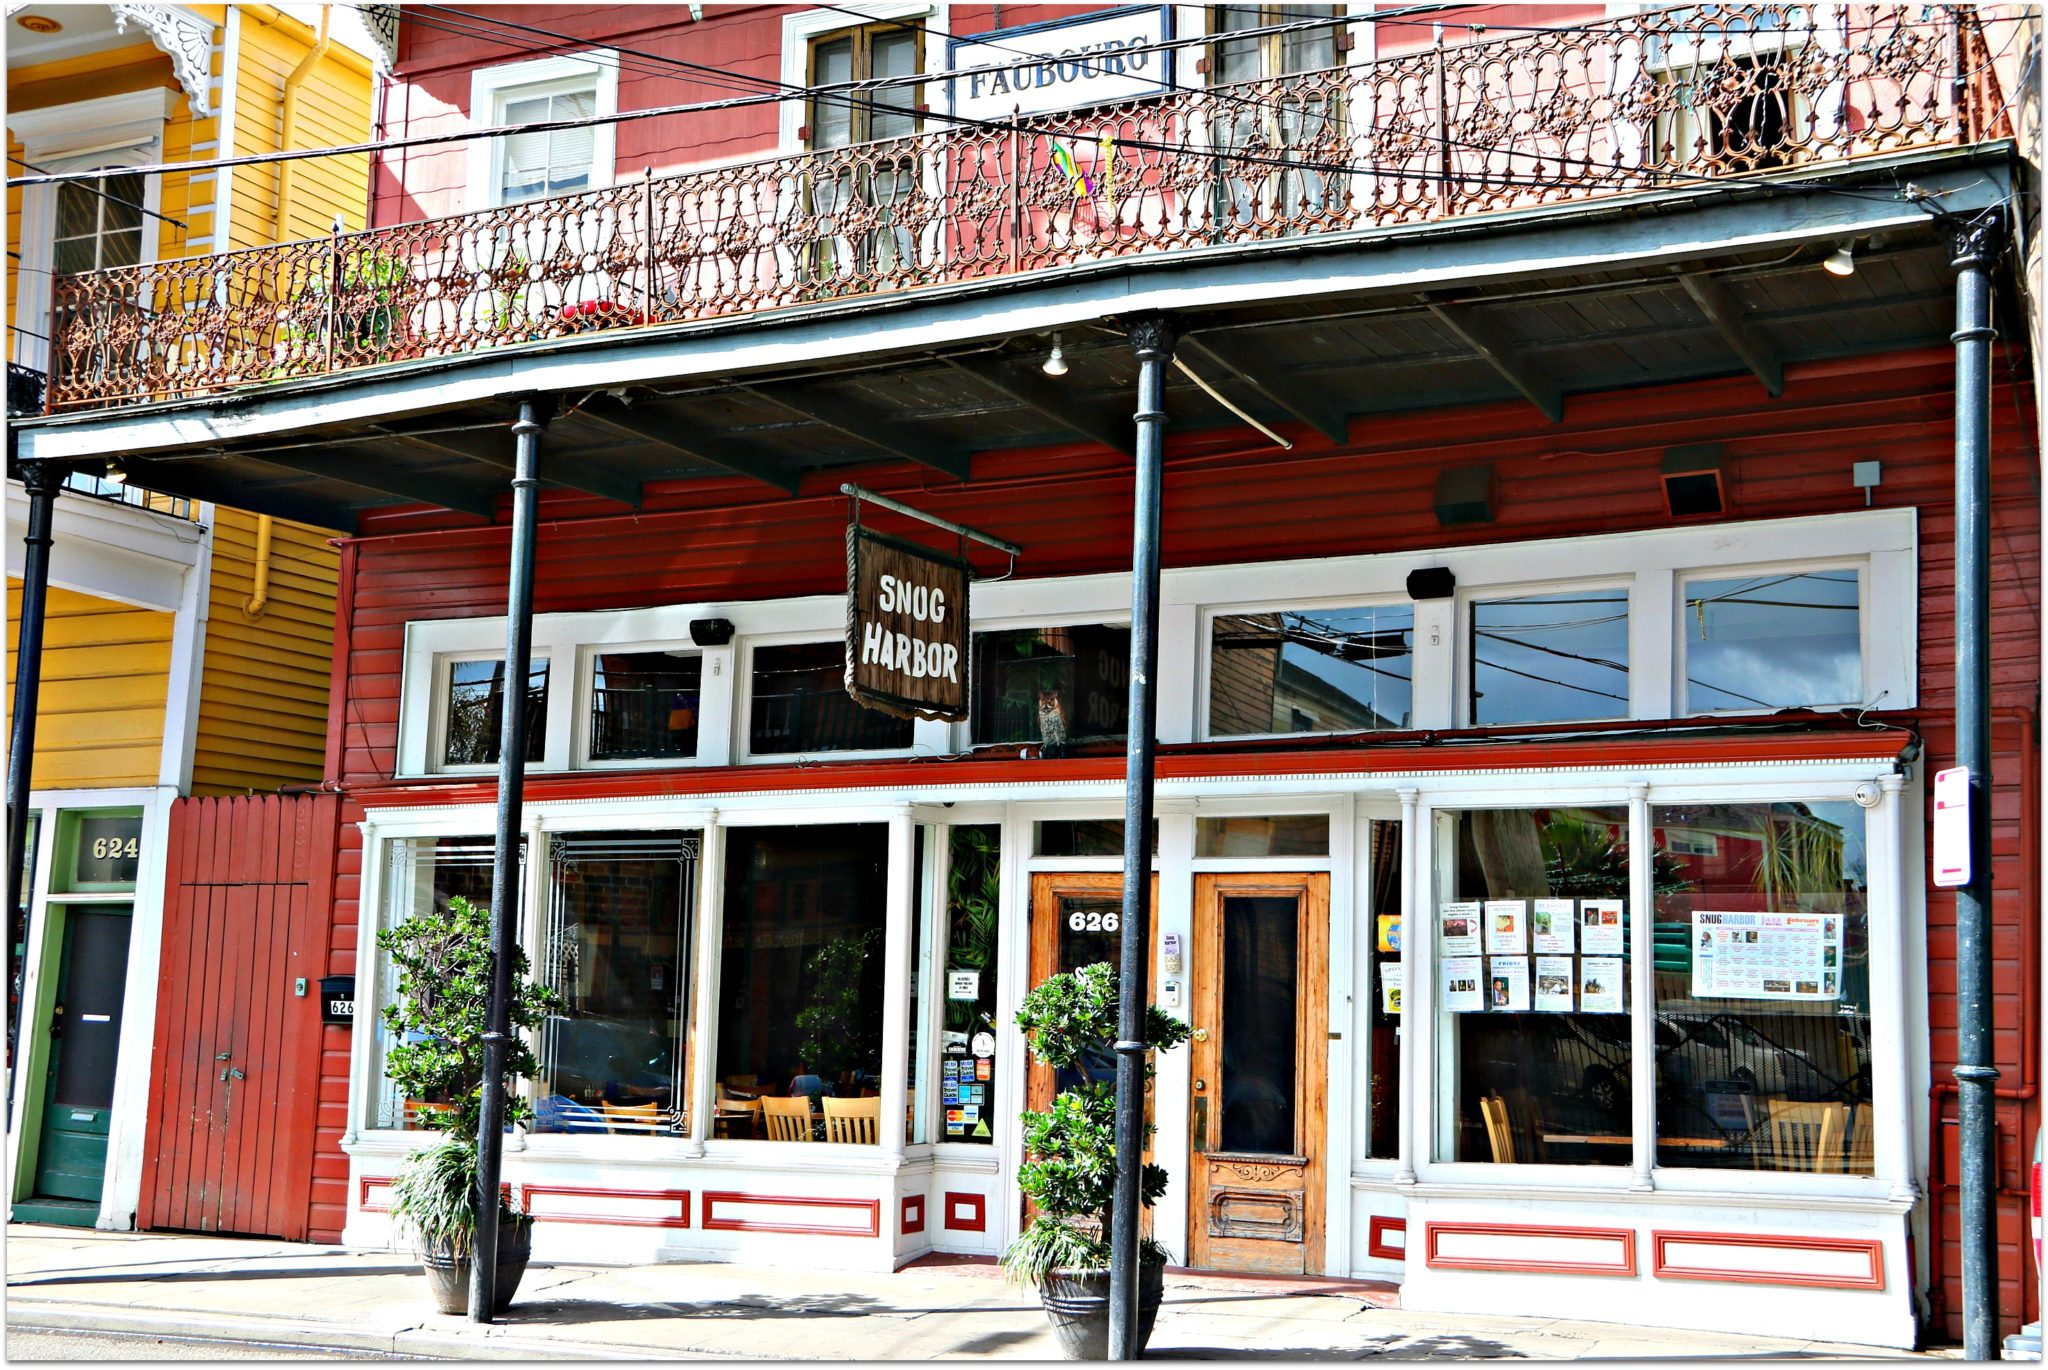 Frenchmen Street in New Orleans Marigny Neighborhood